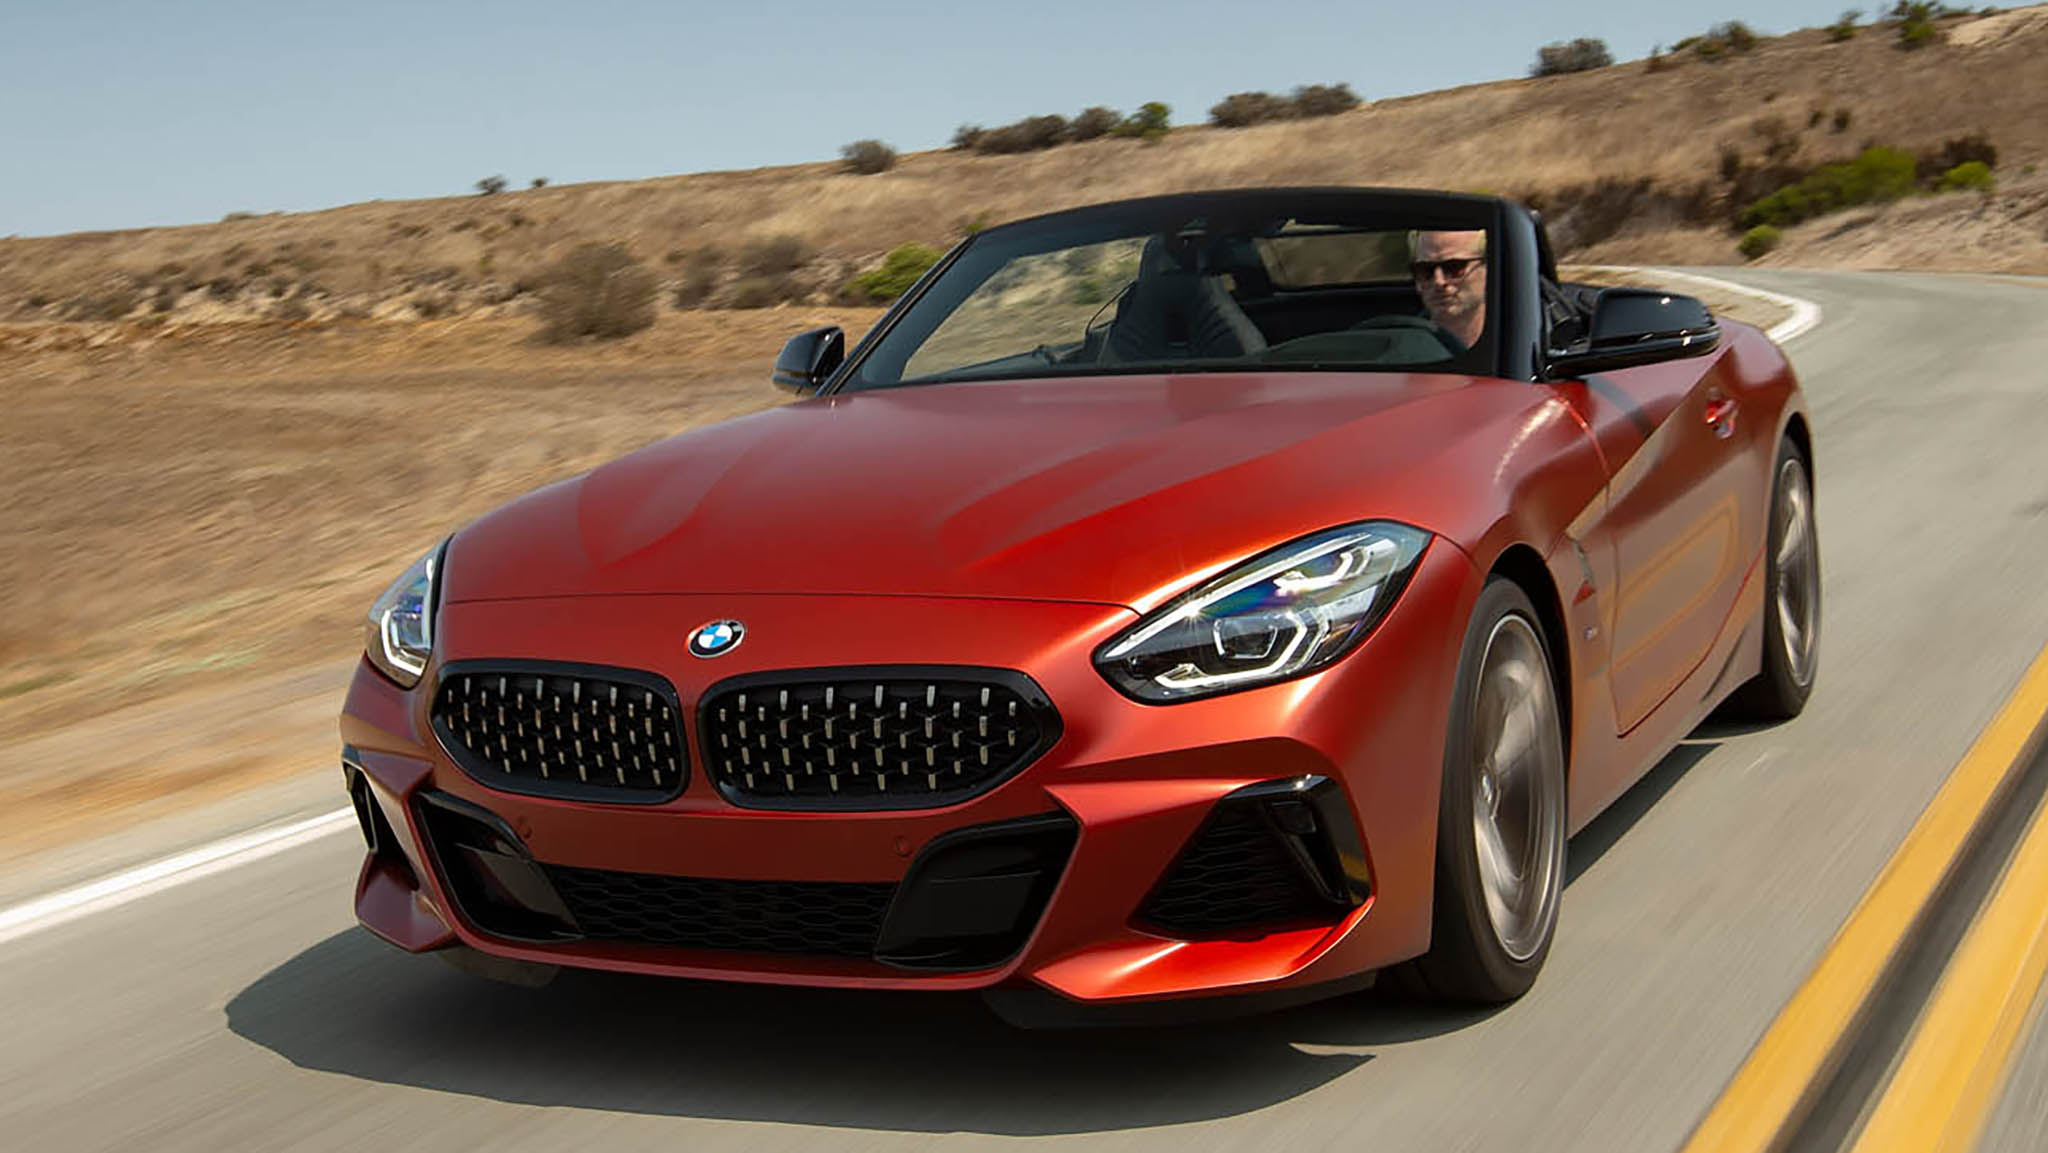 Stunning 2019 Bmw Z4 M40i First Edition Revealed At Pebble Beach